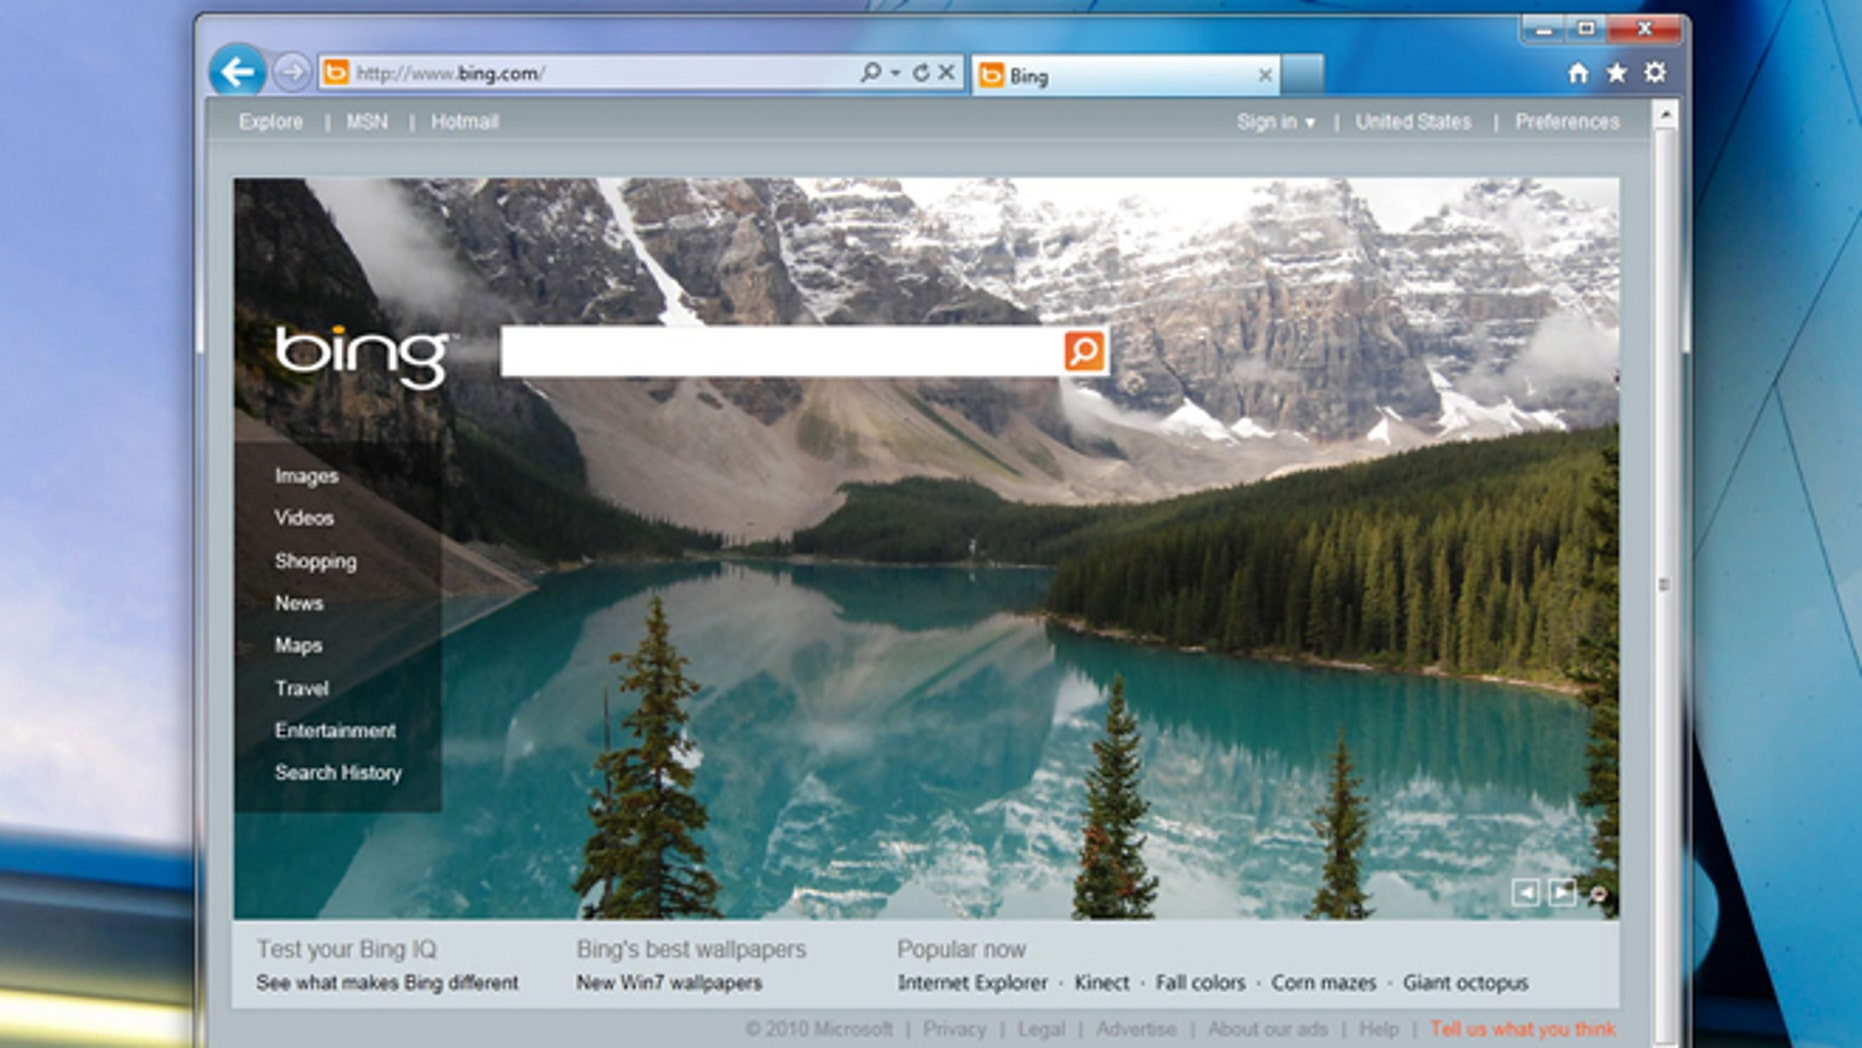 The Internet Explorer 9 browser pays a visit to the homepage of Microsoft's Bing search engine.